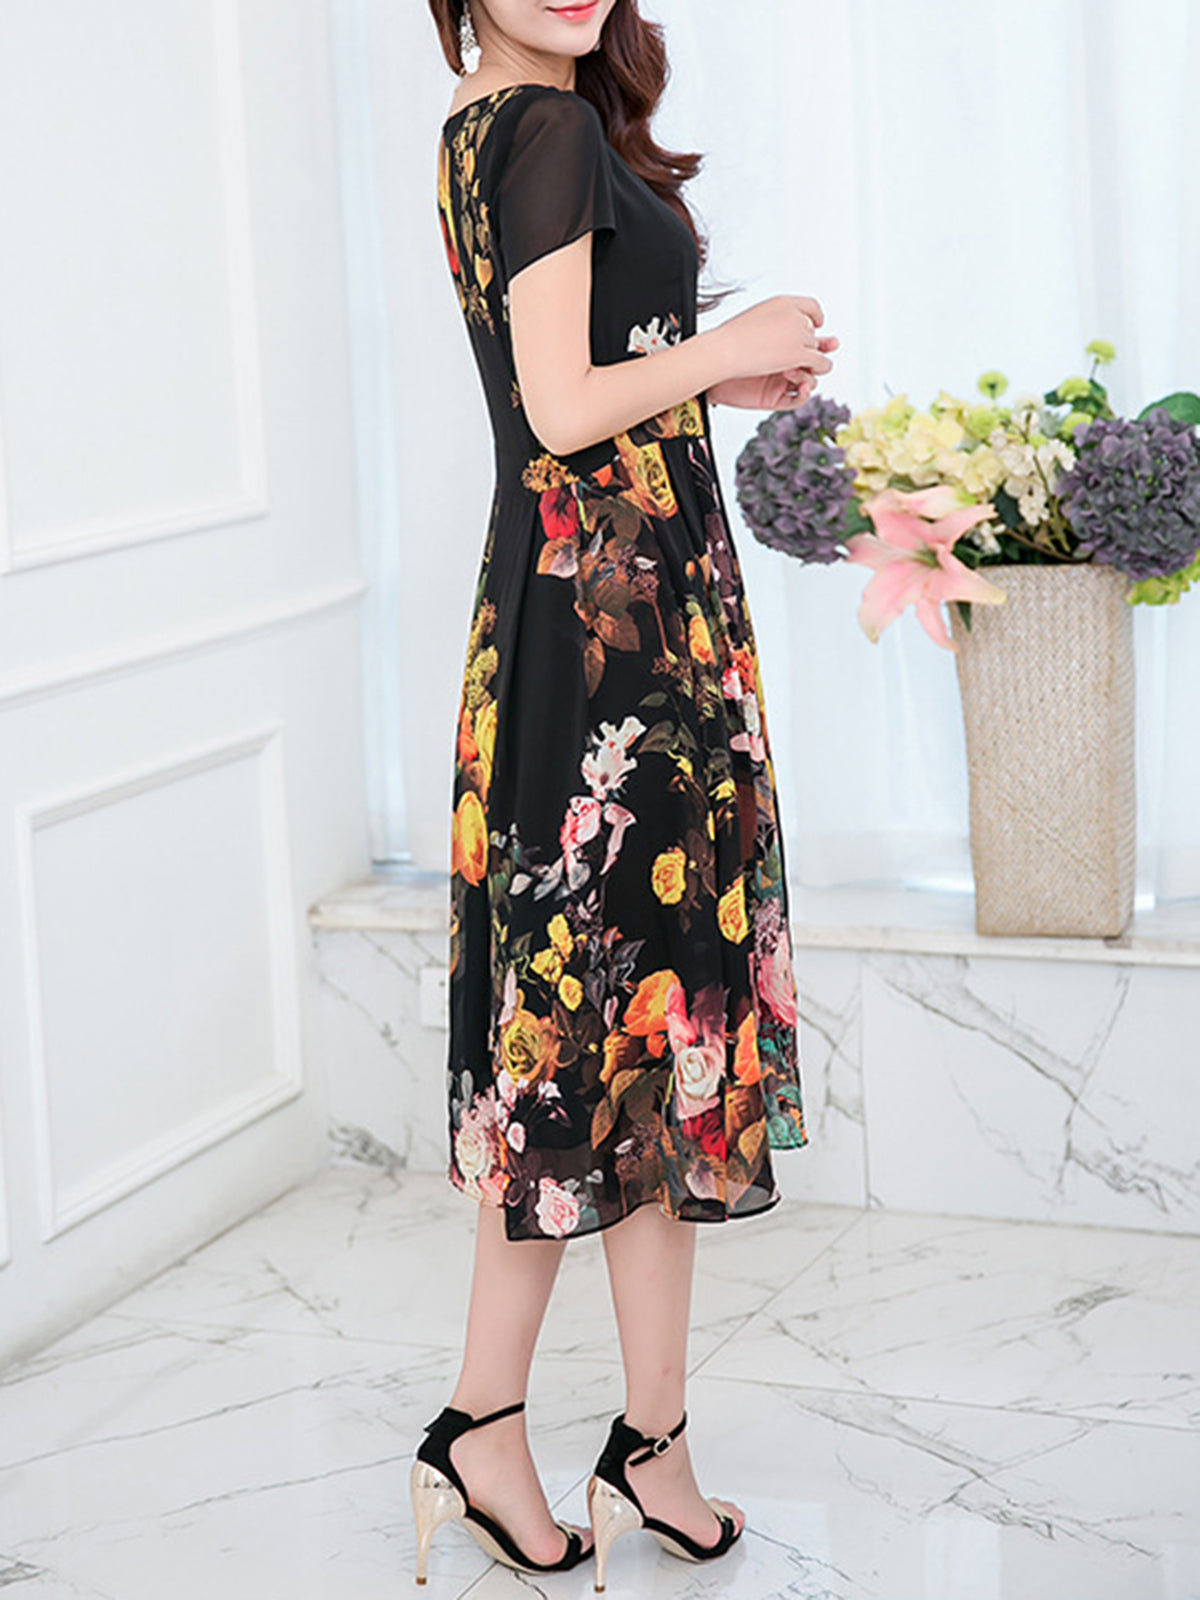 953d2b049d2d ... Load image into Gallery viewer, Chiffon Square Neck Buttoned Paneled  Printed Folds Midi Dress ...